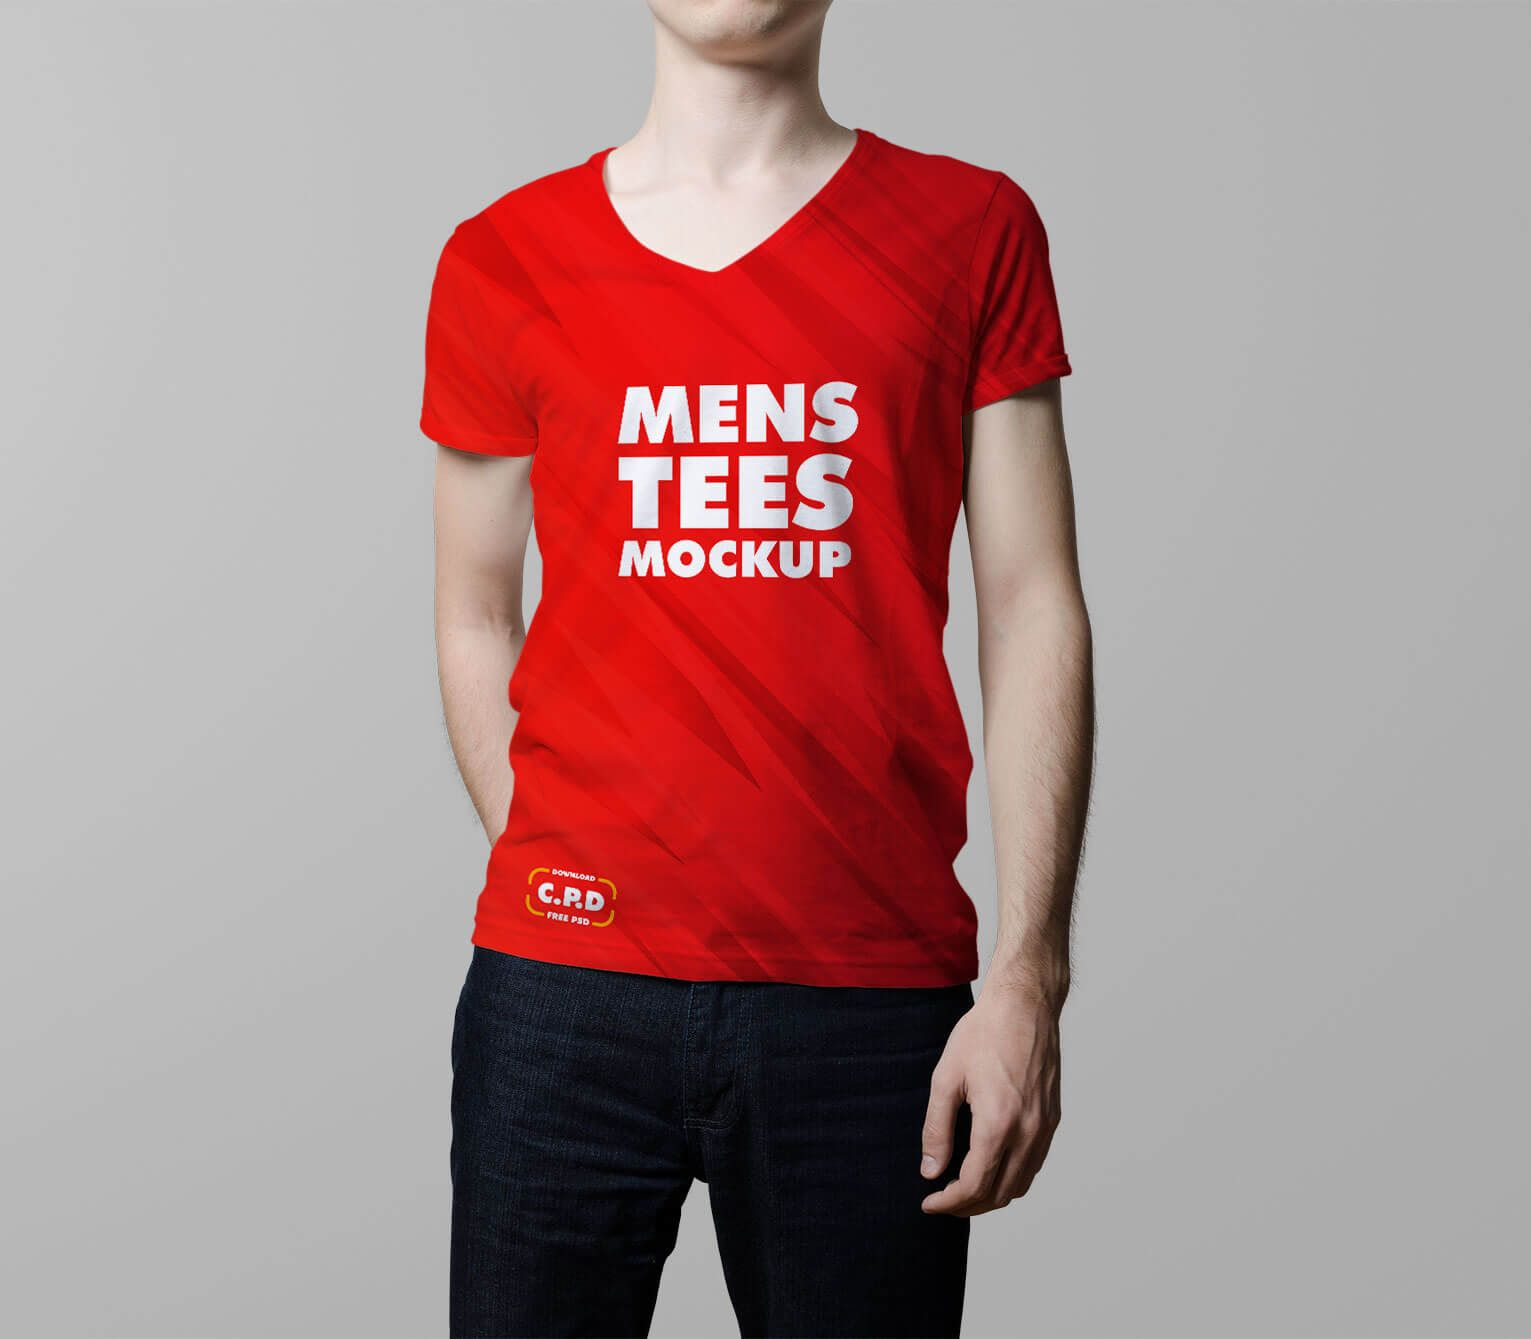 Download V Neck Male T Shirt Mockup Free Psd Pixelify Best Free Fonts Mockups Templates And Vectors Shirt Mockup Tshirt Mockup Clothing Mockup